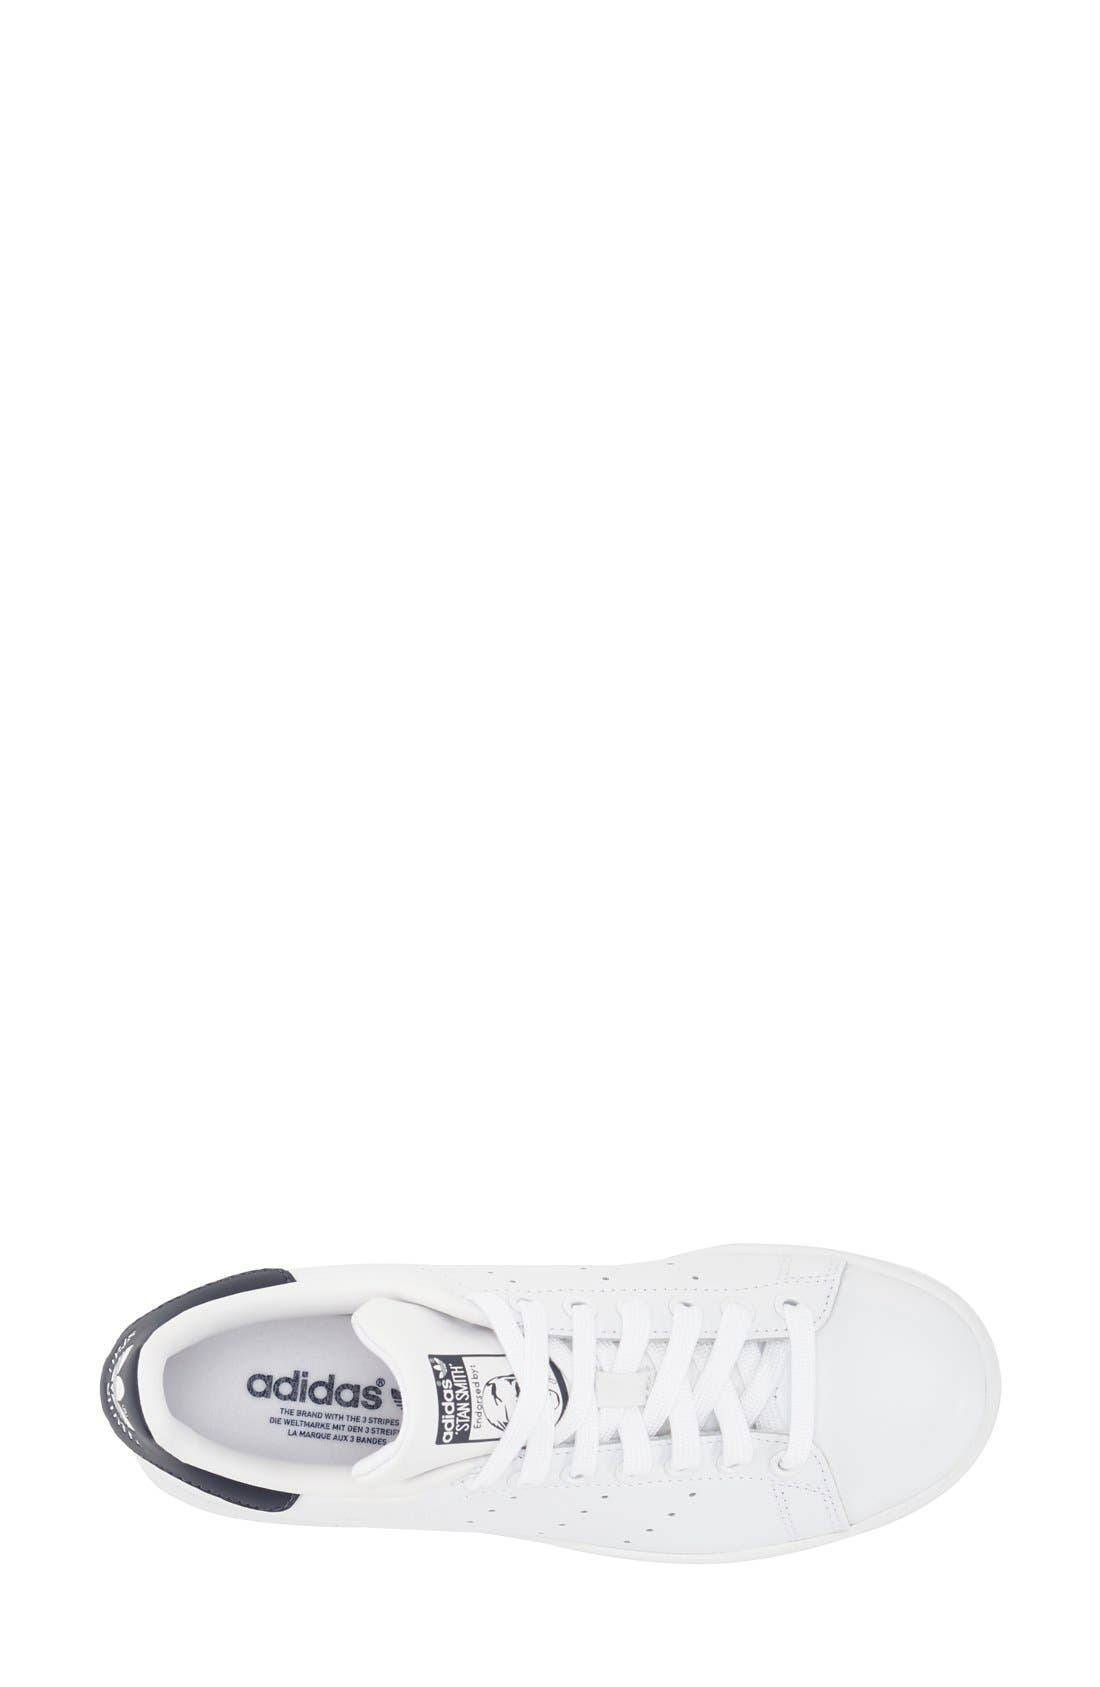 Stan Smith Sneaker,                             Alternate thumbnail 3, color,                             White/ Dark Blue